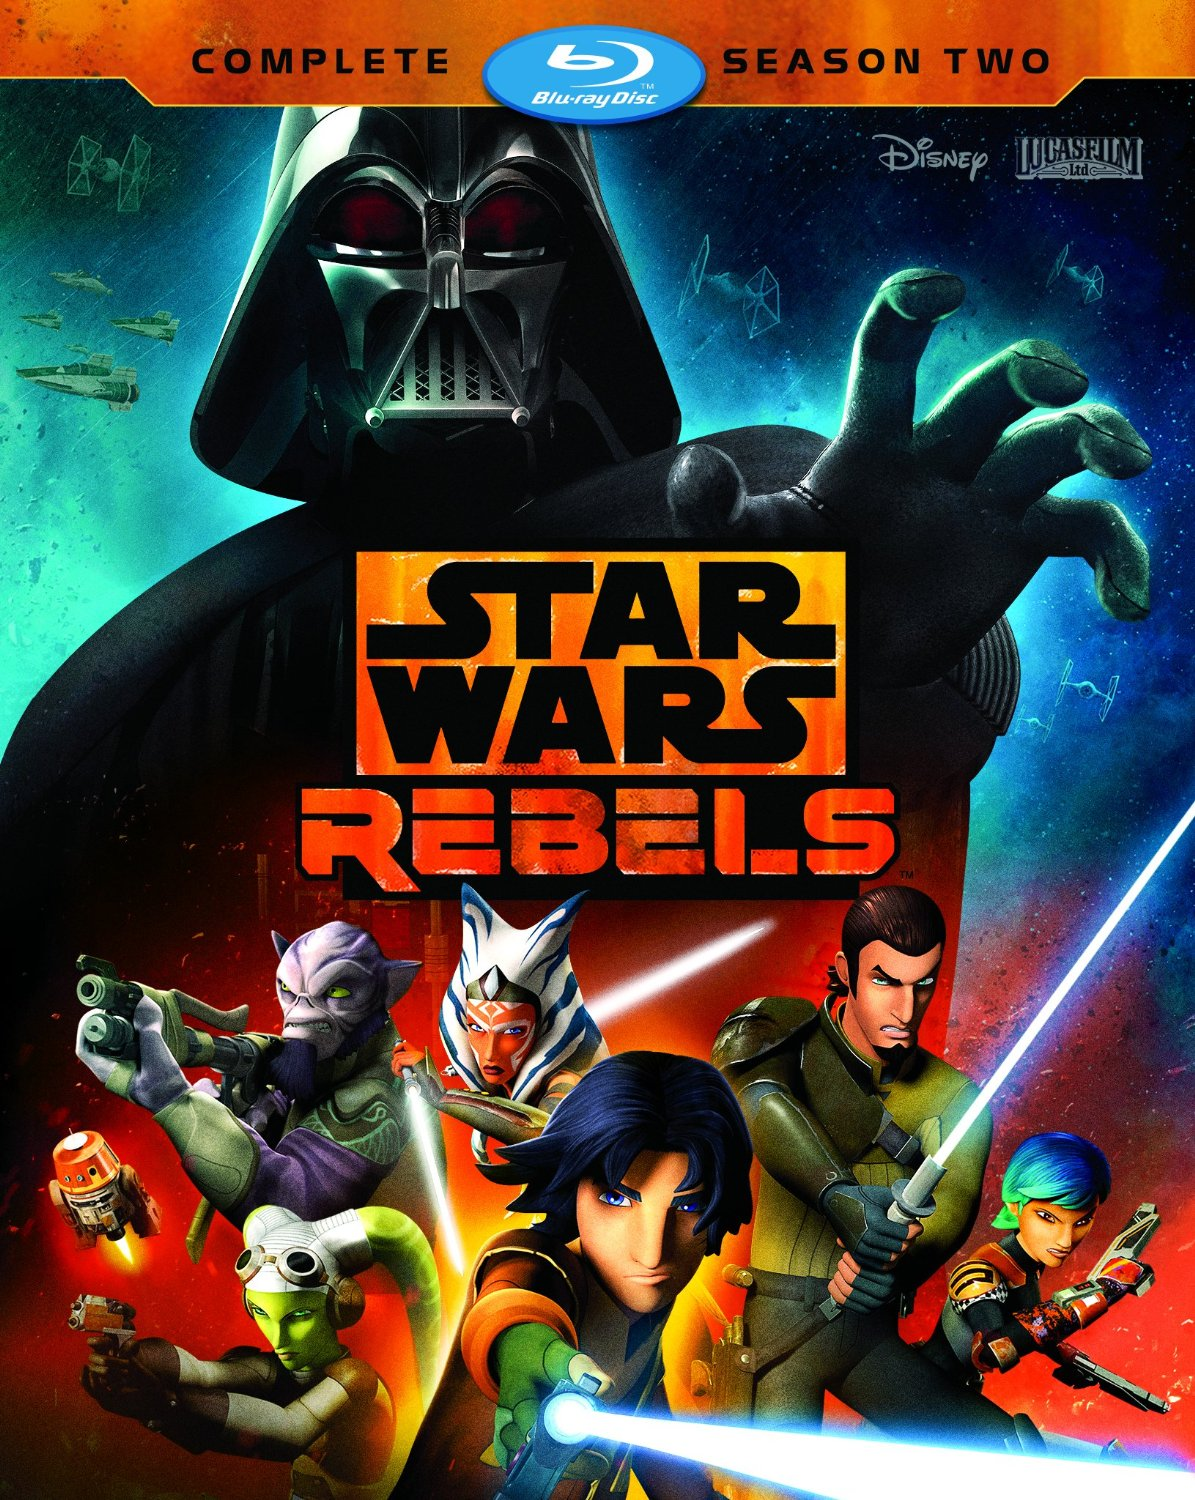 Star Wars Rebels [TV Series] - Star Wars Rebels: Complete Season Two